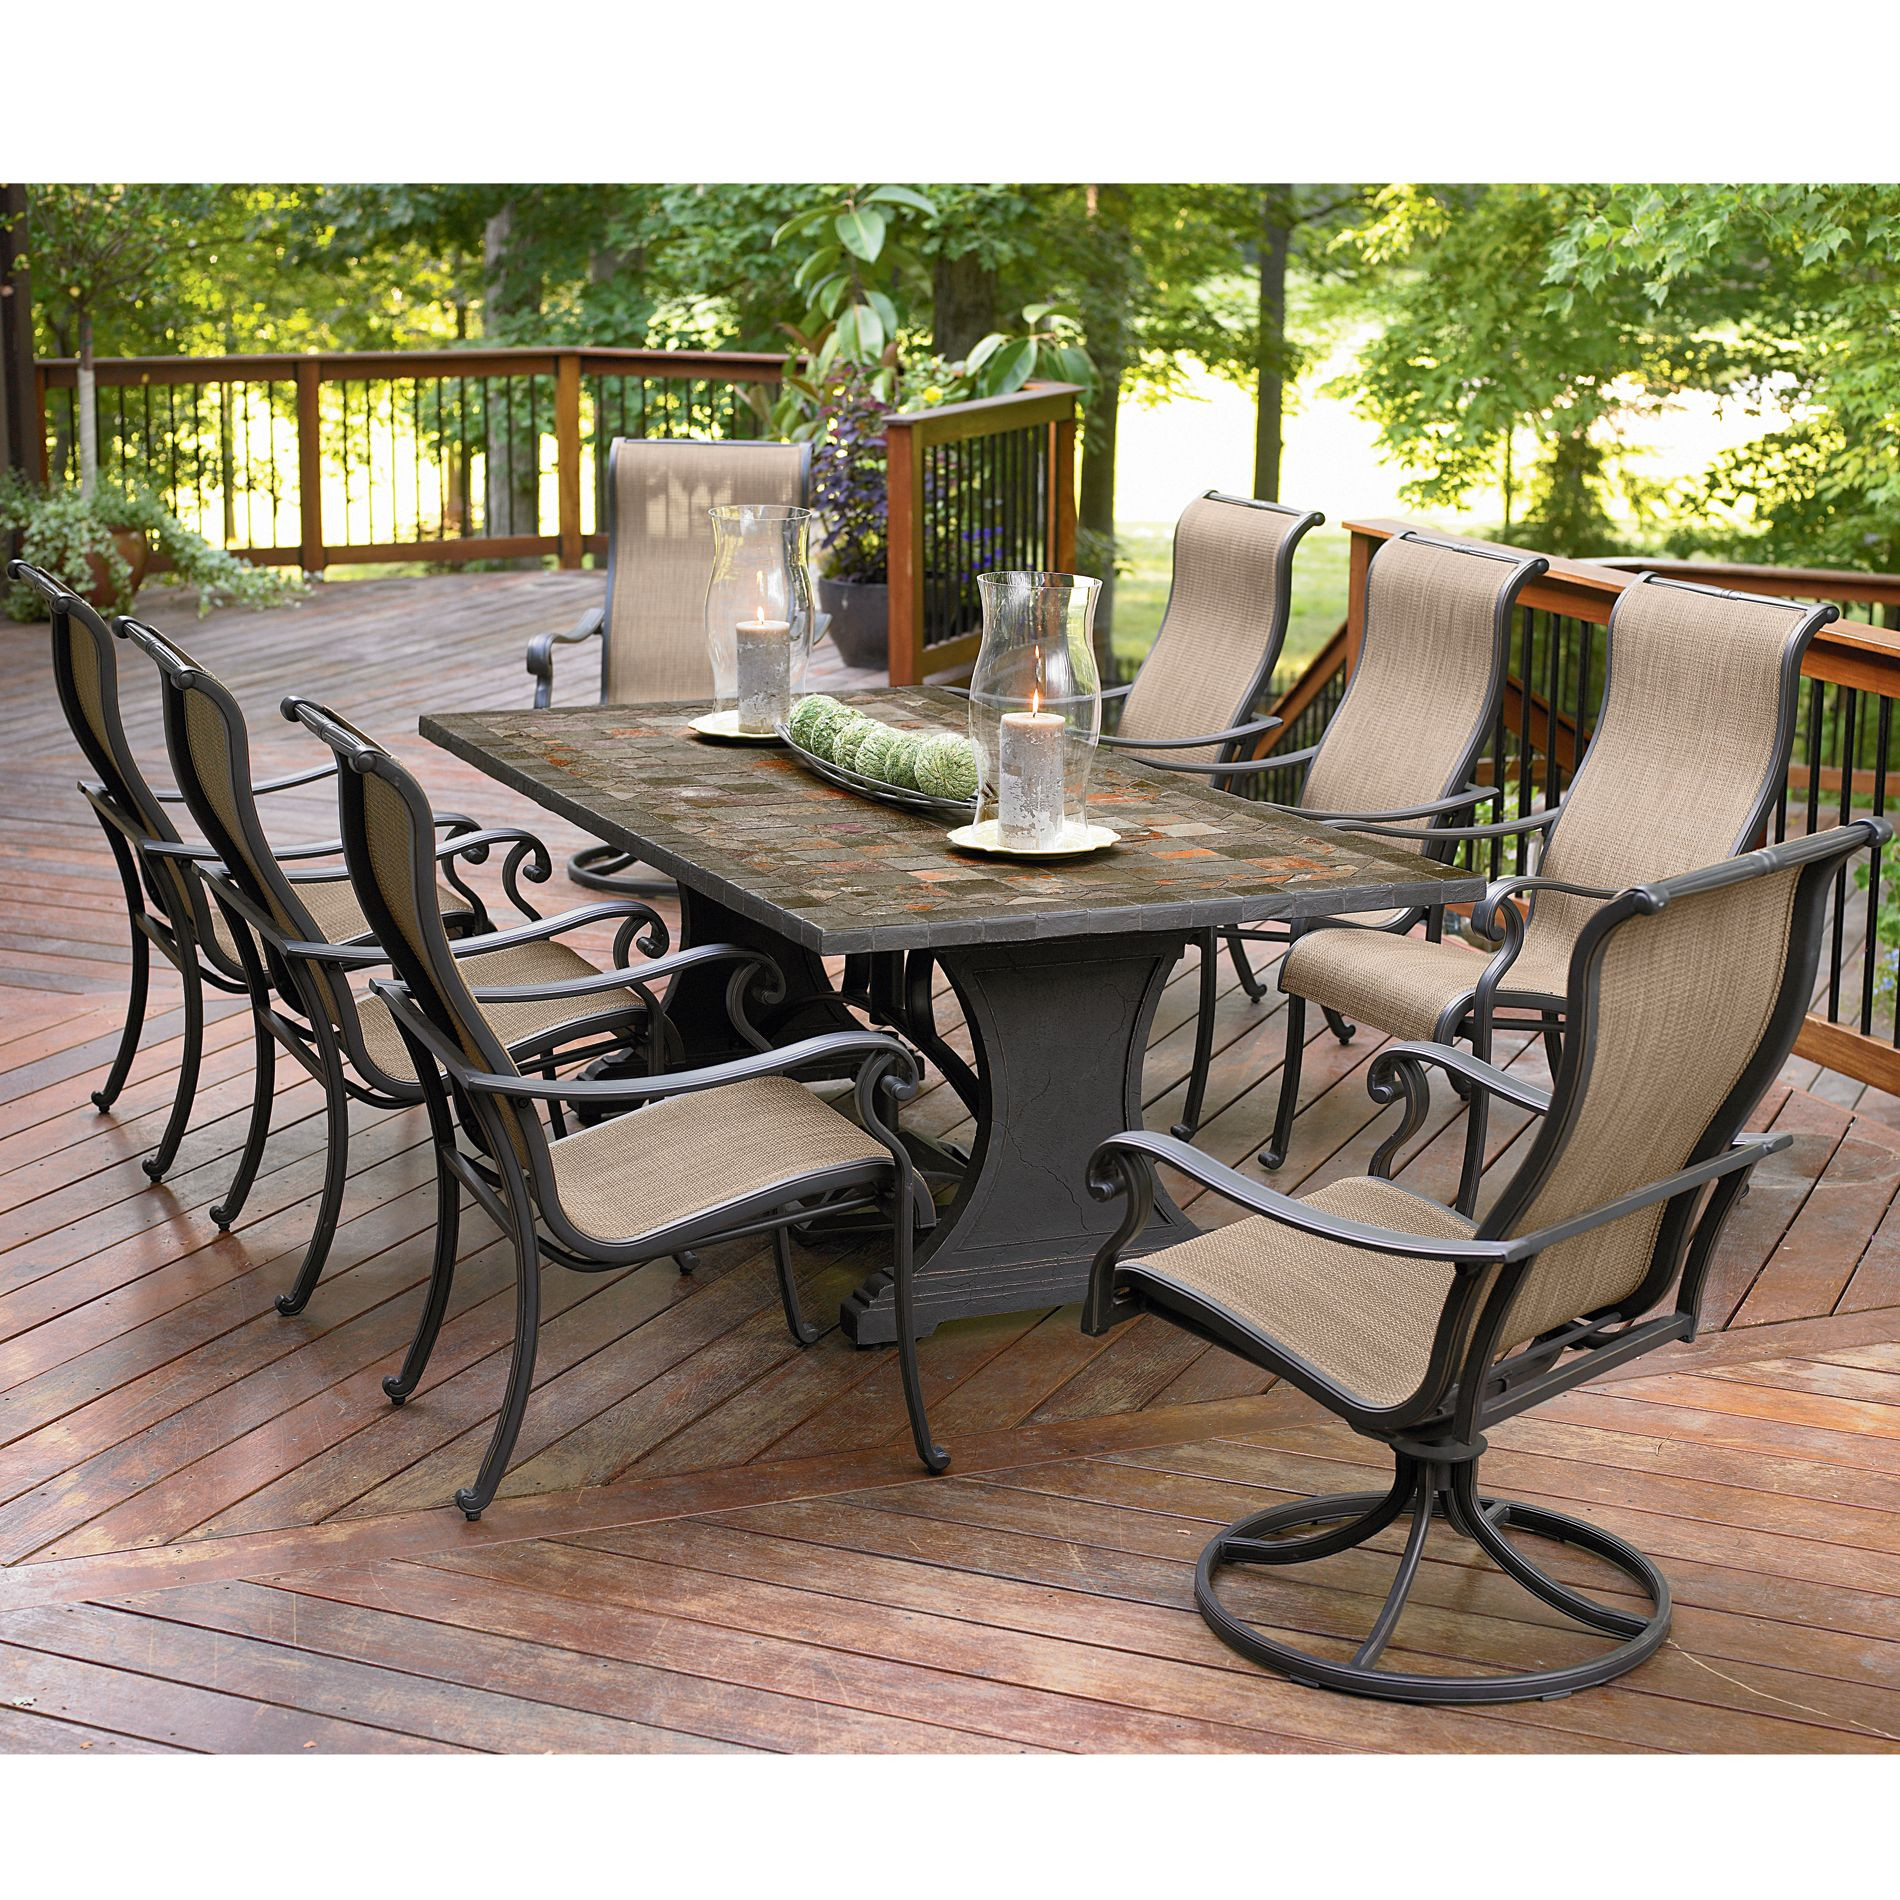 Best ideas about Restaurant Patio Furniture . Save or Pin Patio Furniture Stay fortable Outdoors with Furniture Now.